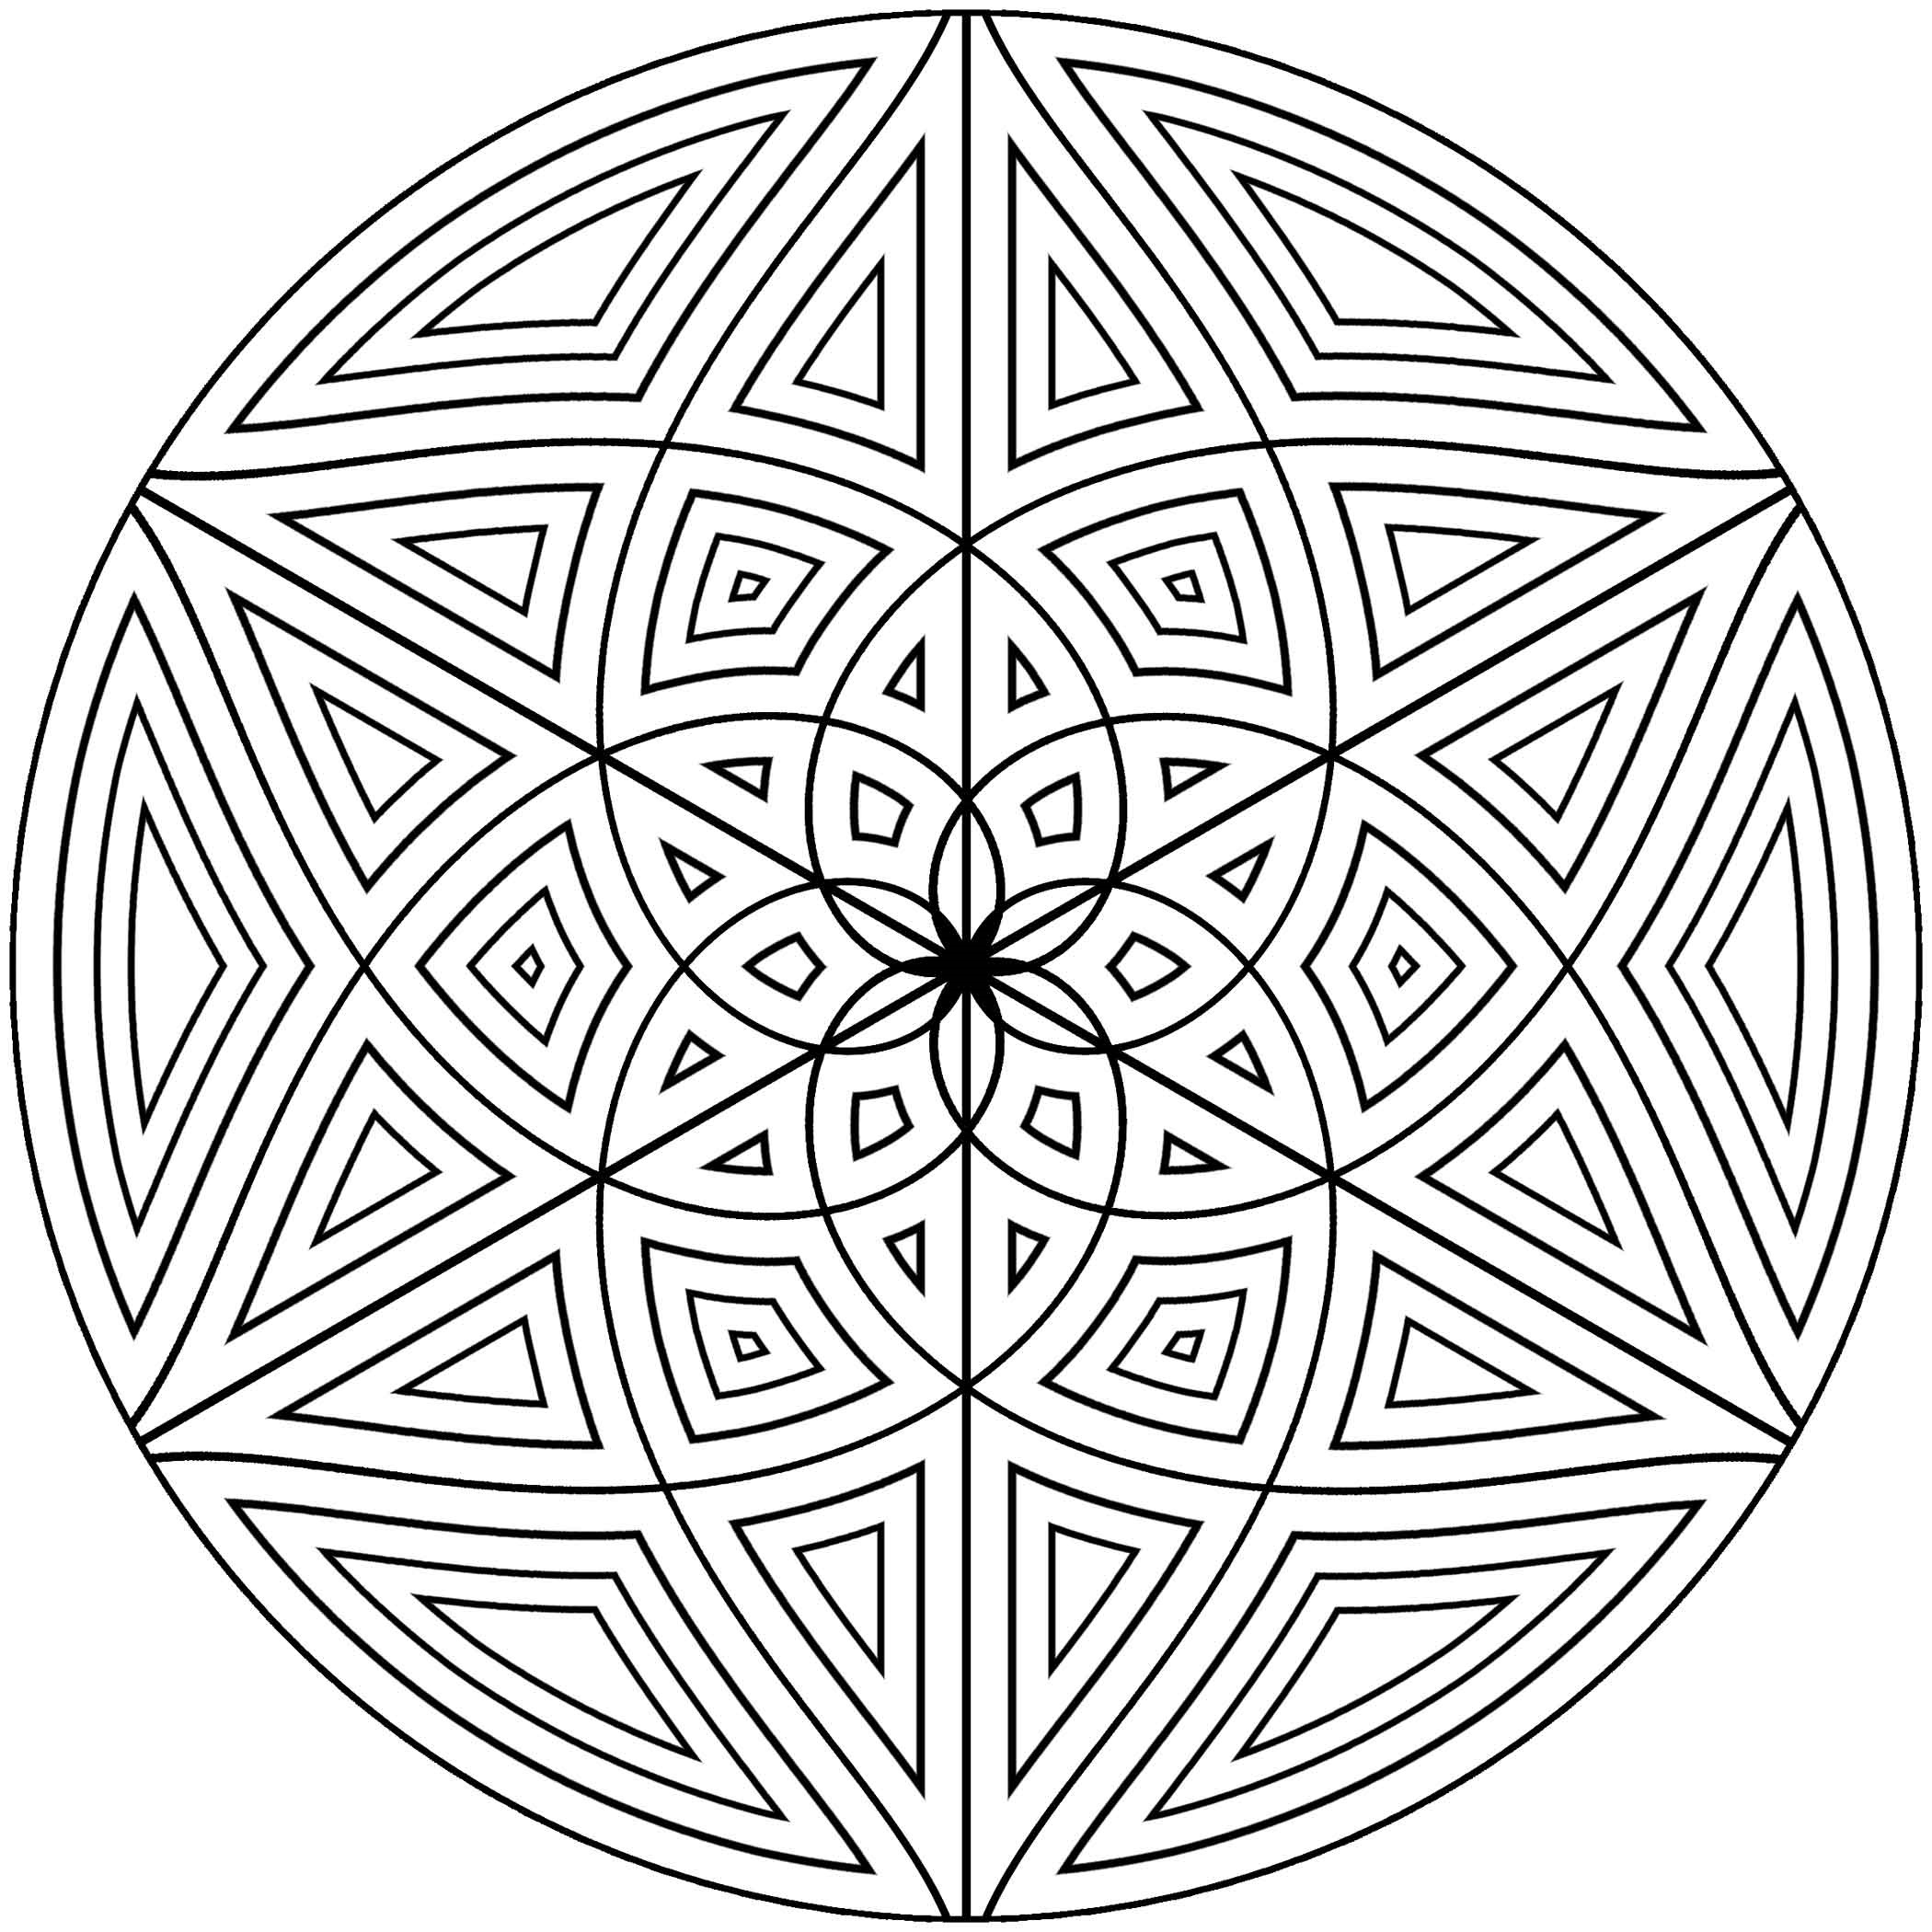 cool coloring designs to print cool geometric design coloring pages getcoloringpagescom cool designs coloring print to